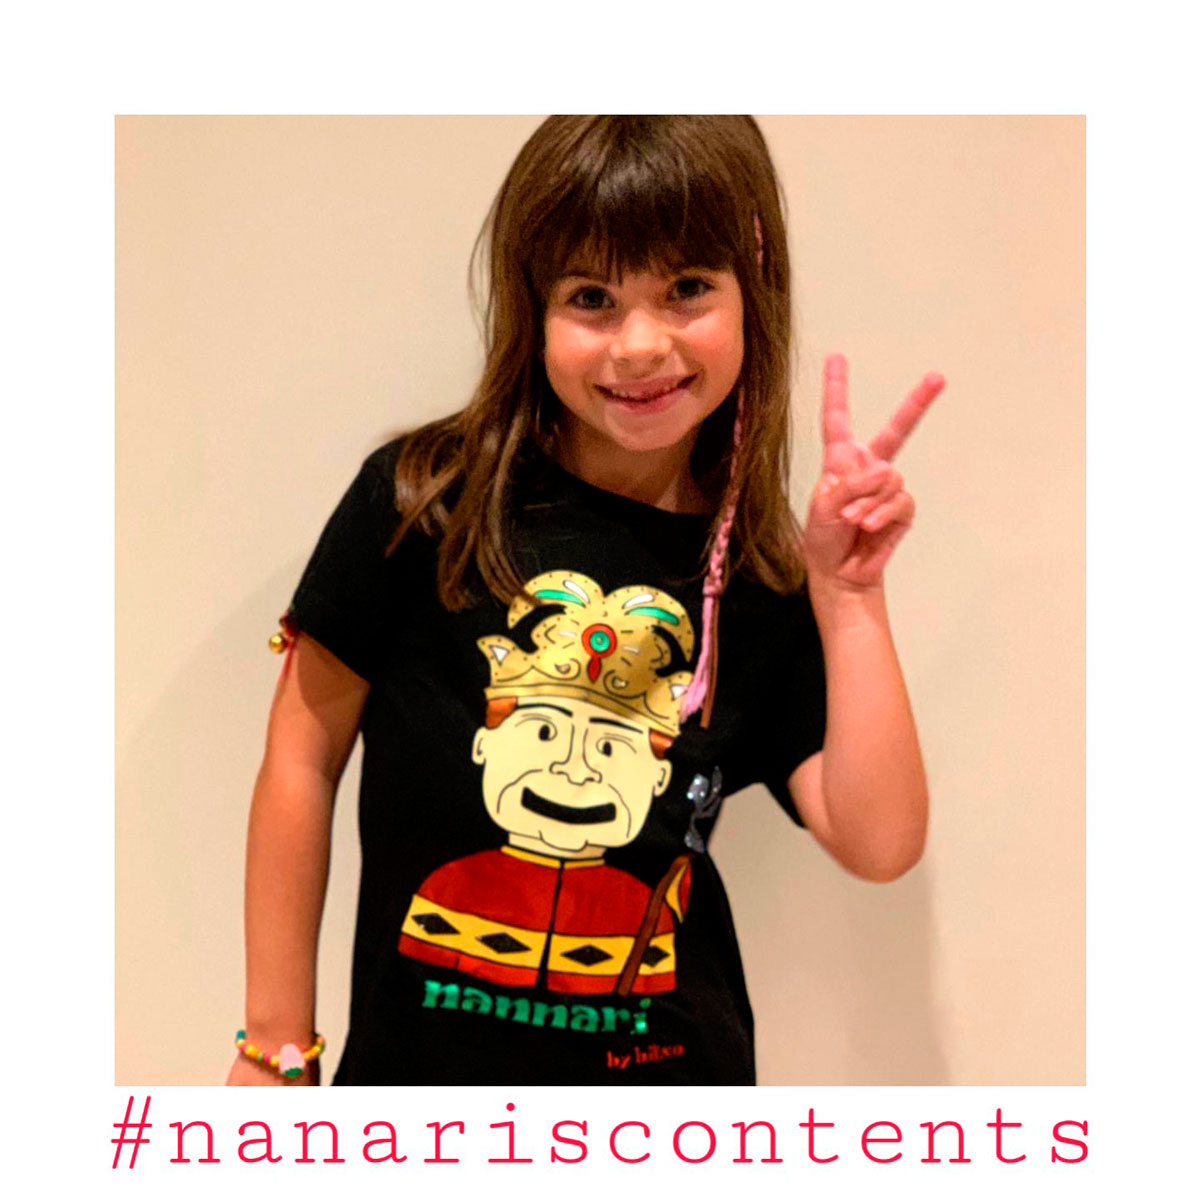 Nannaris contents